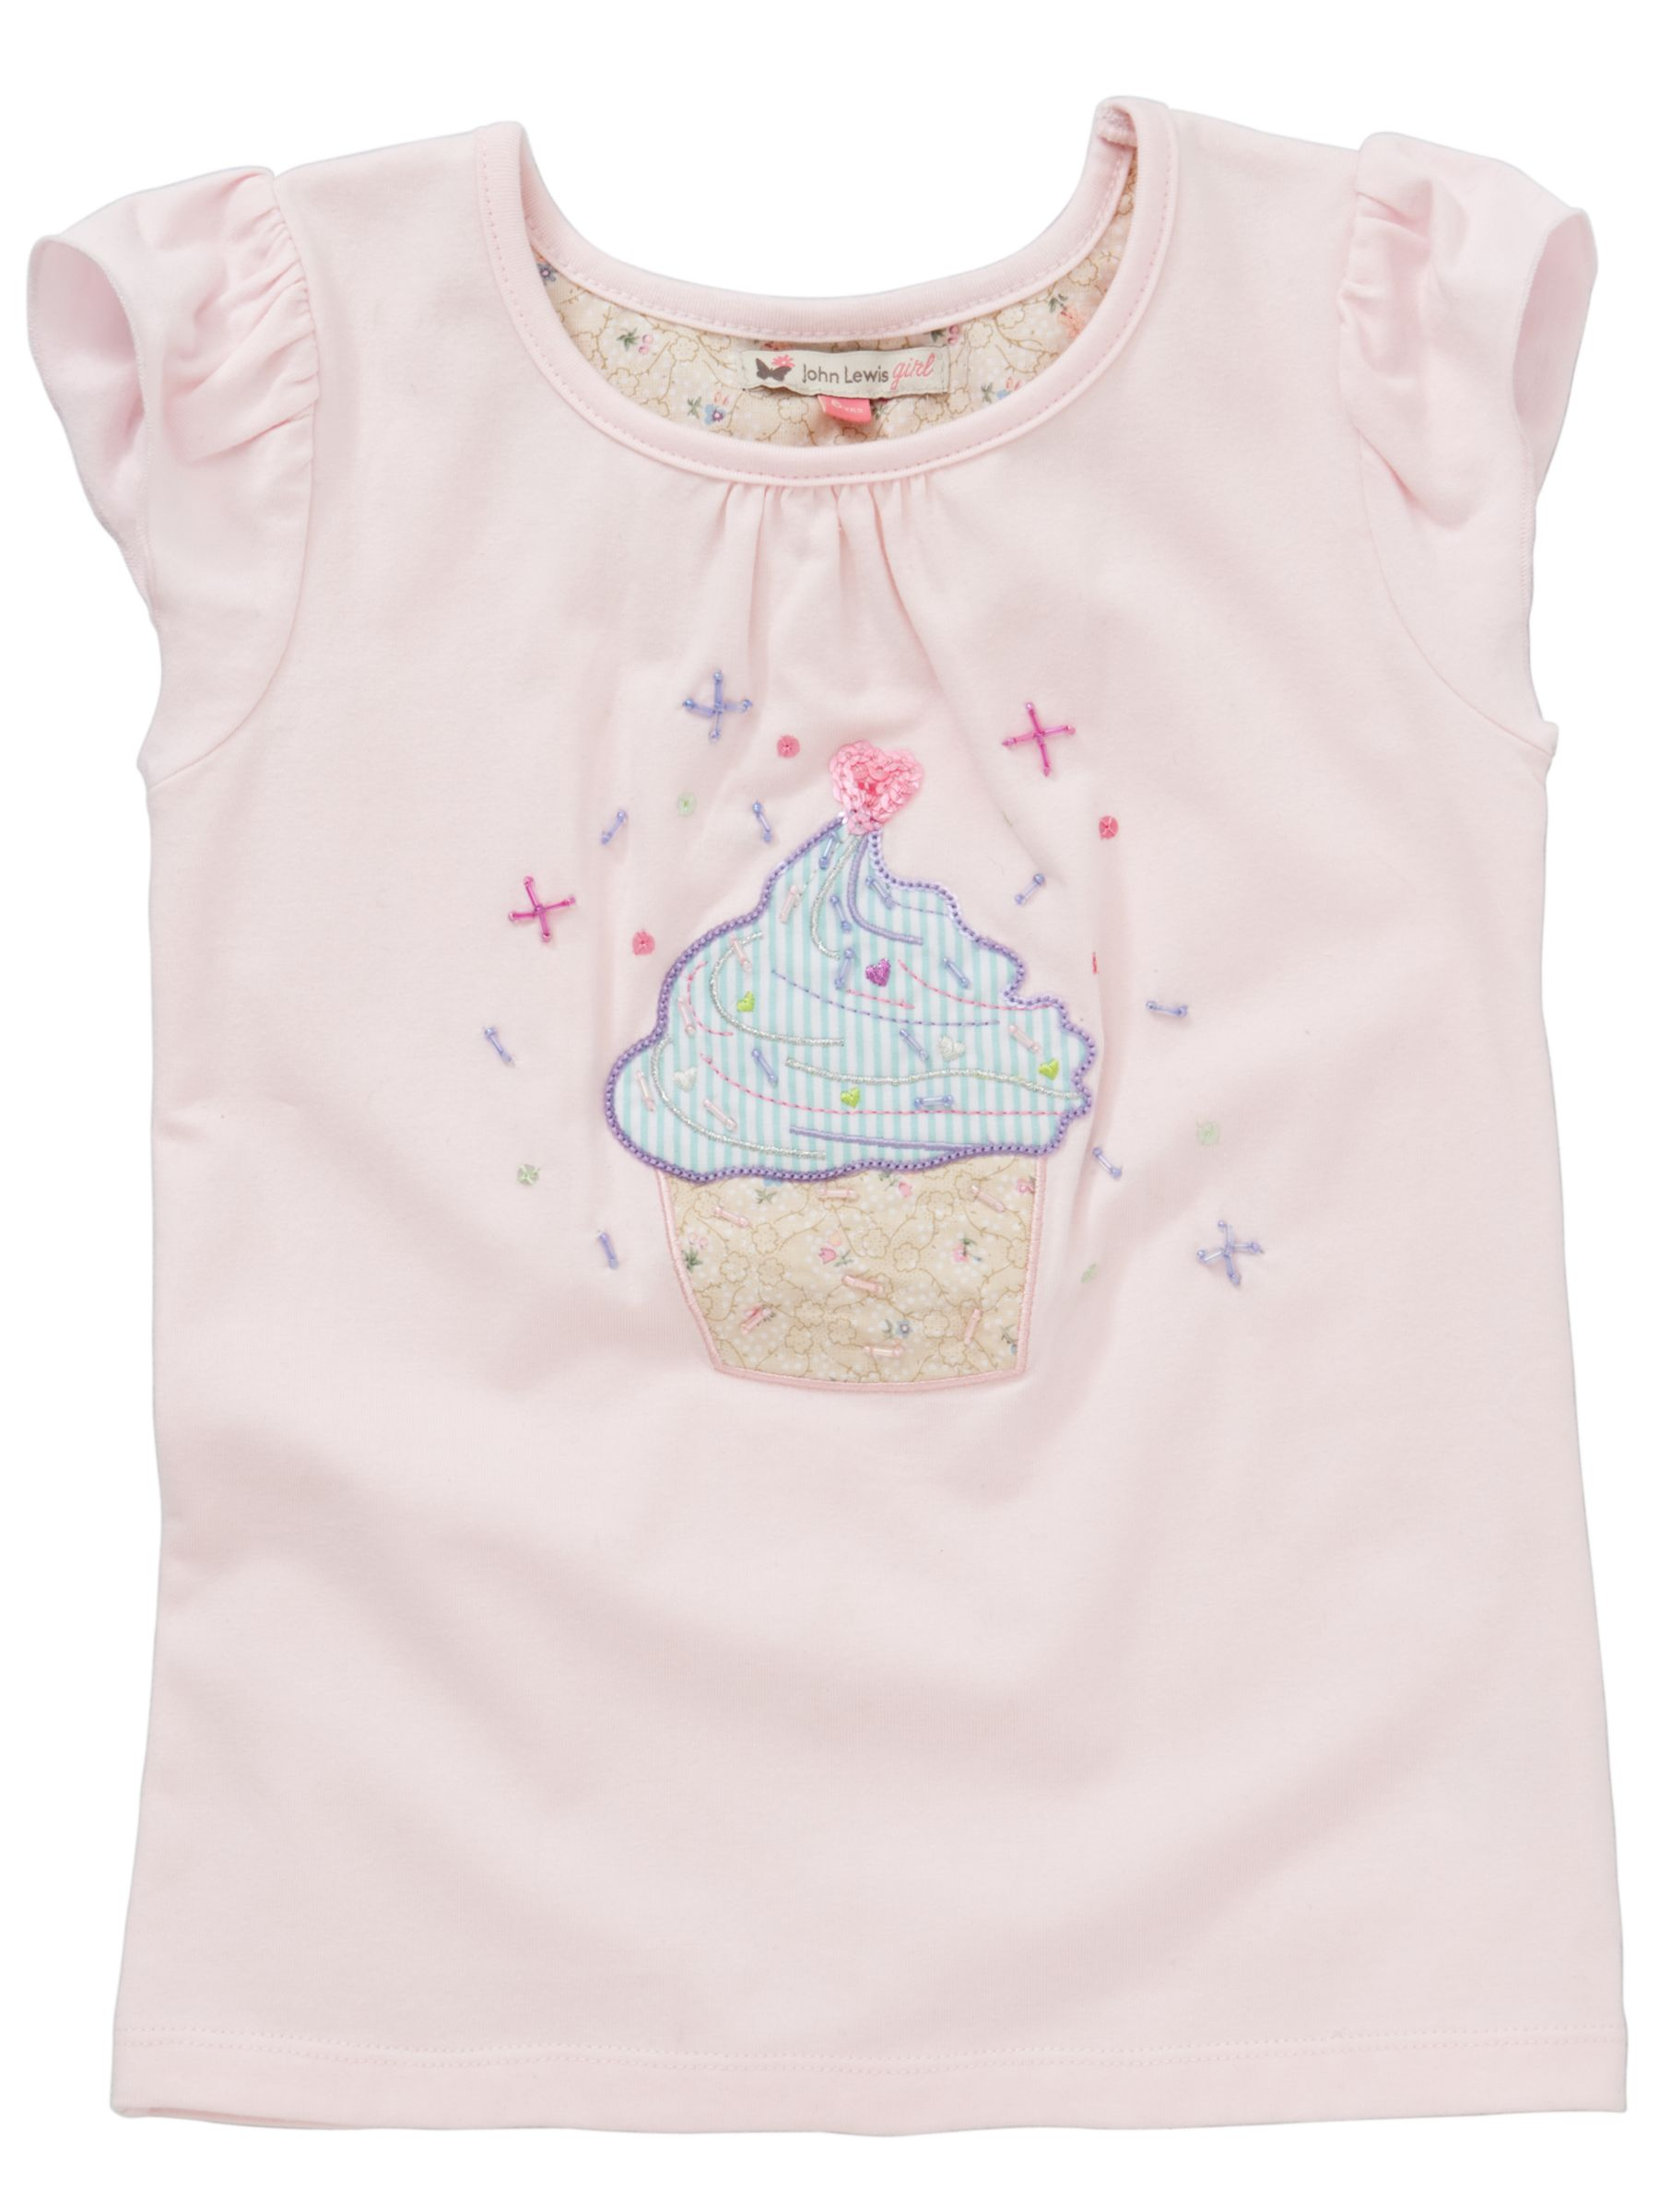 Fairytale T-Shirt, Pink